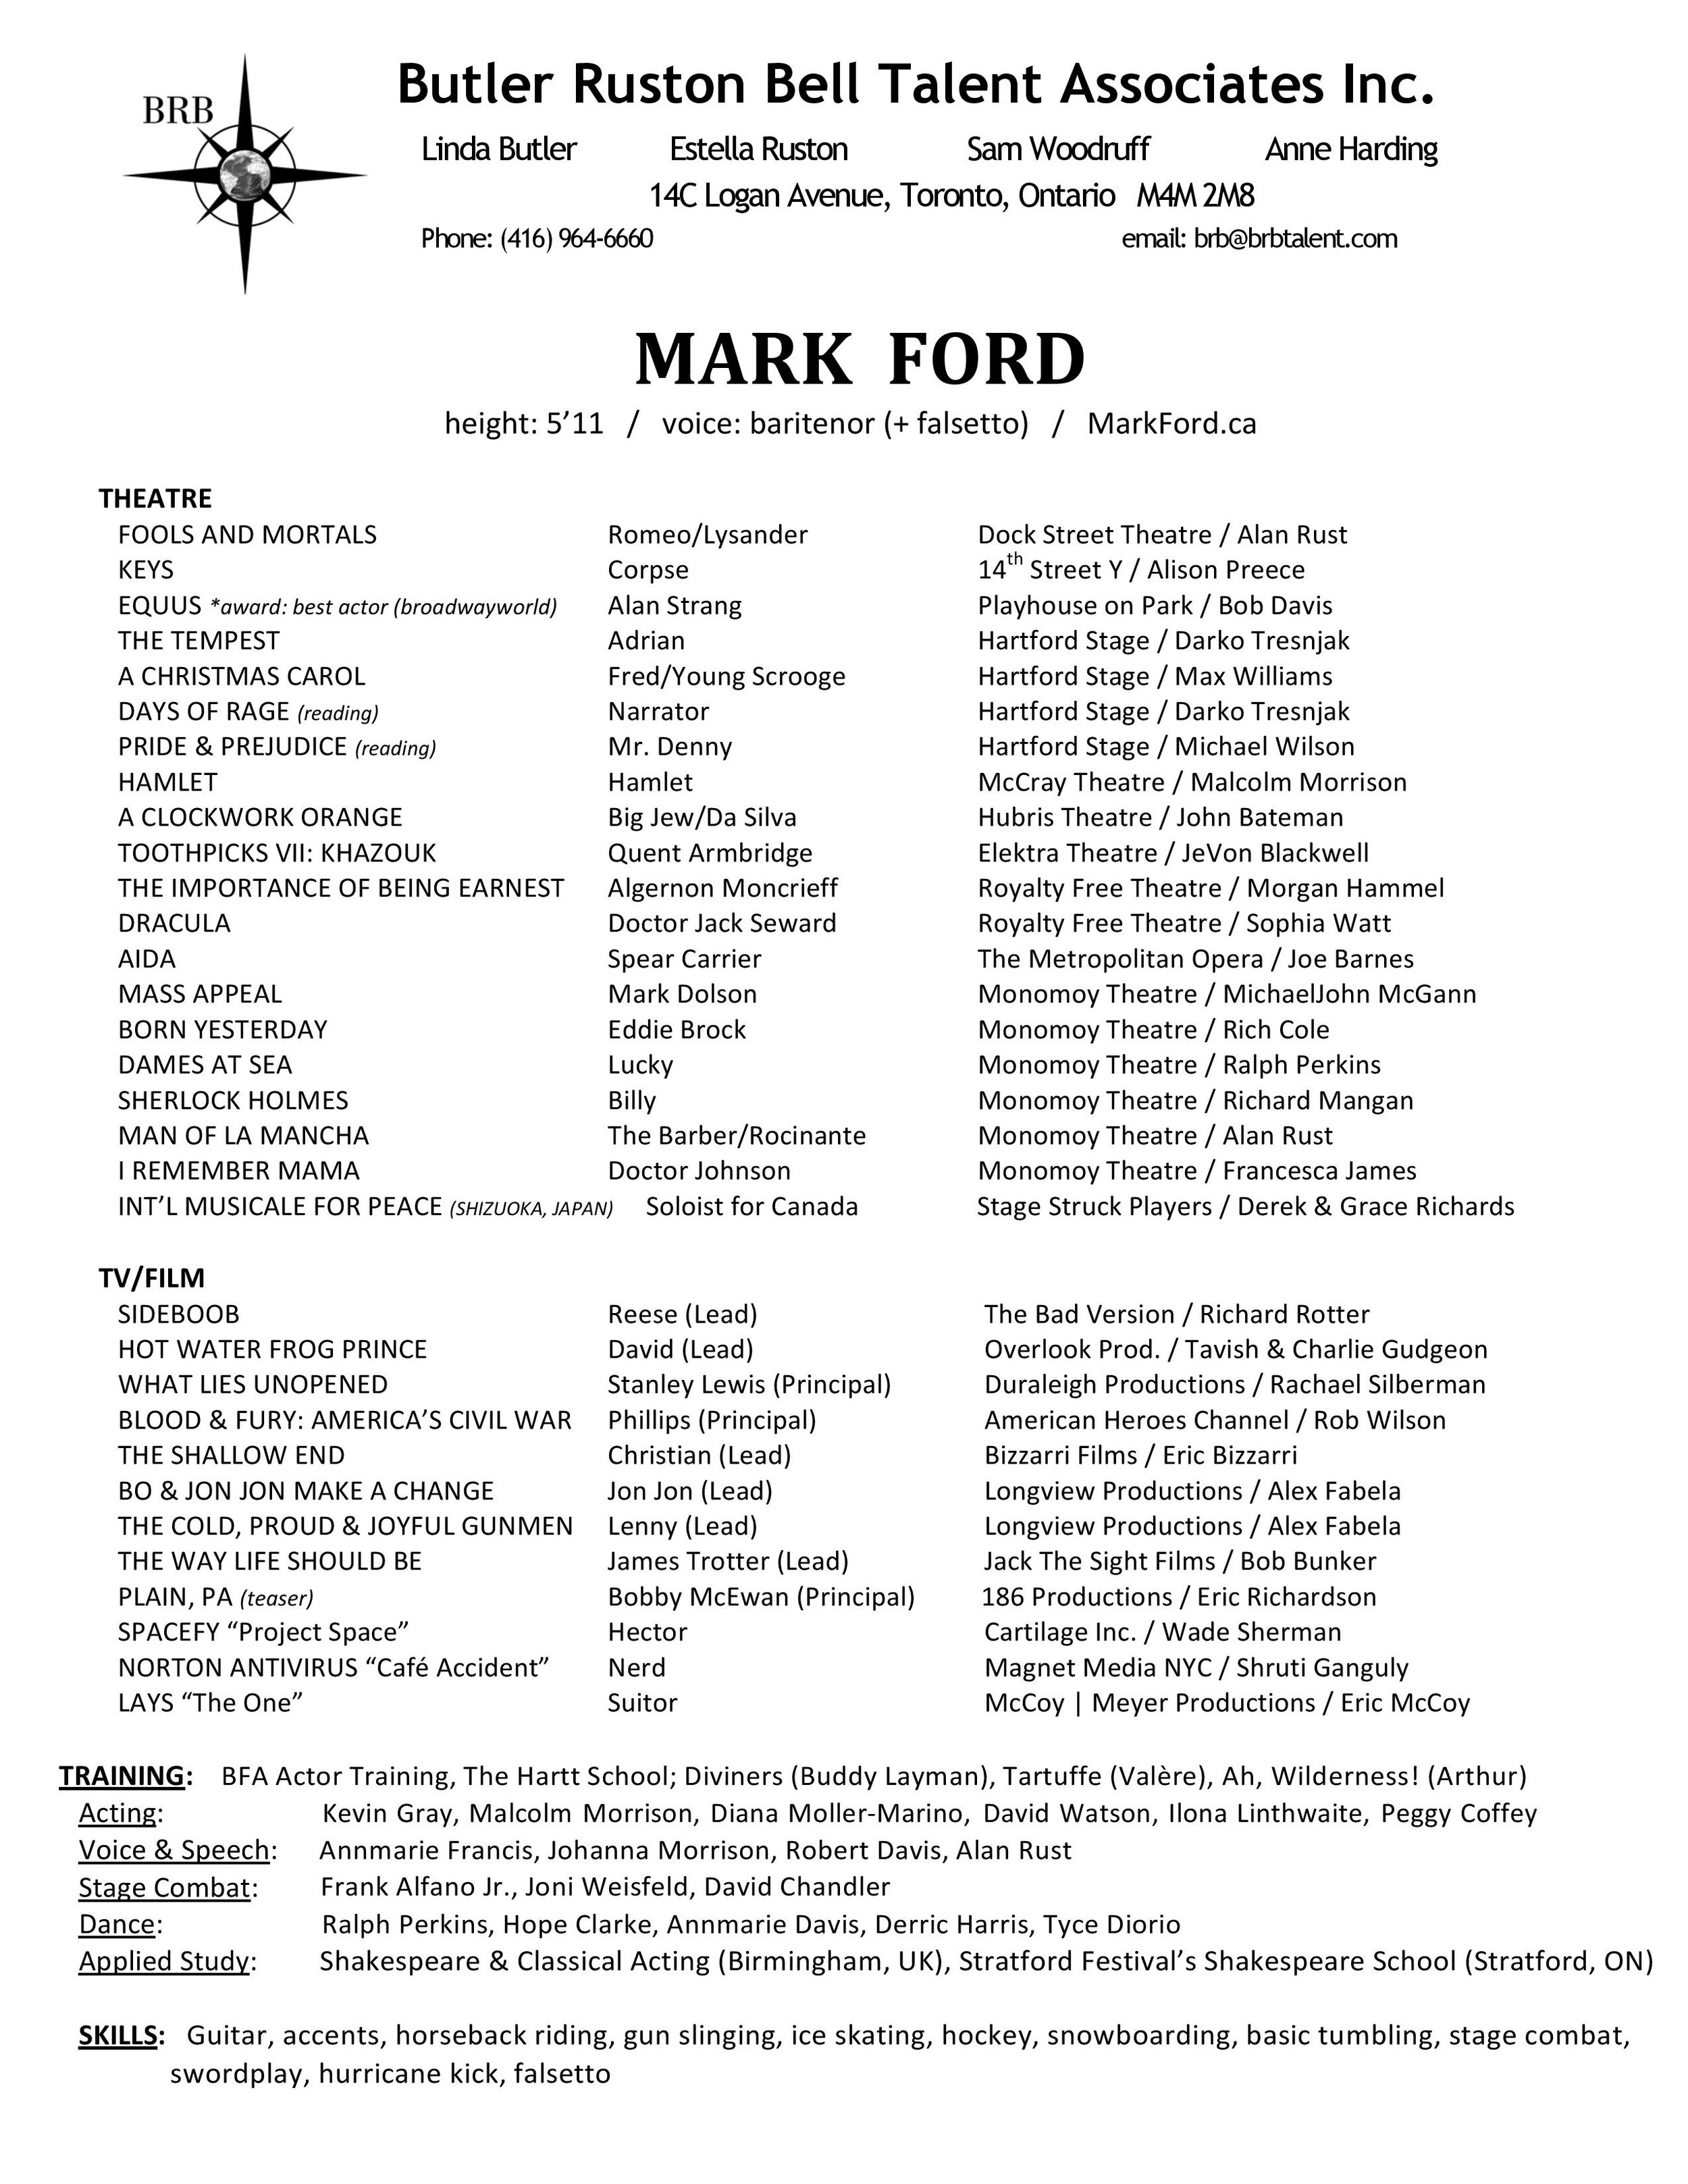 Mark Ford resume-page-001.jpg